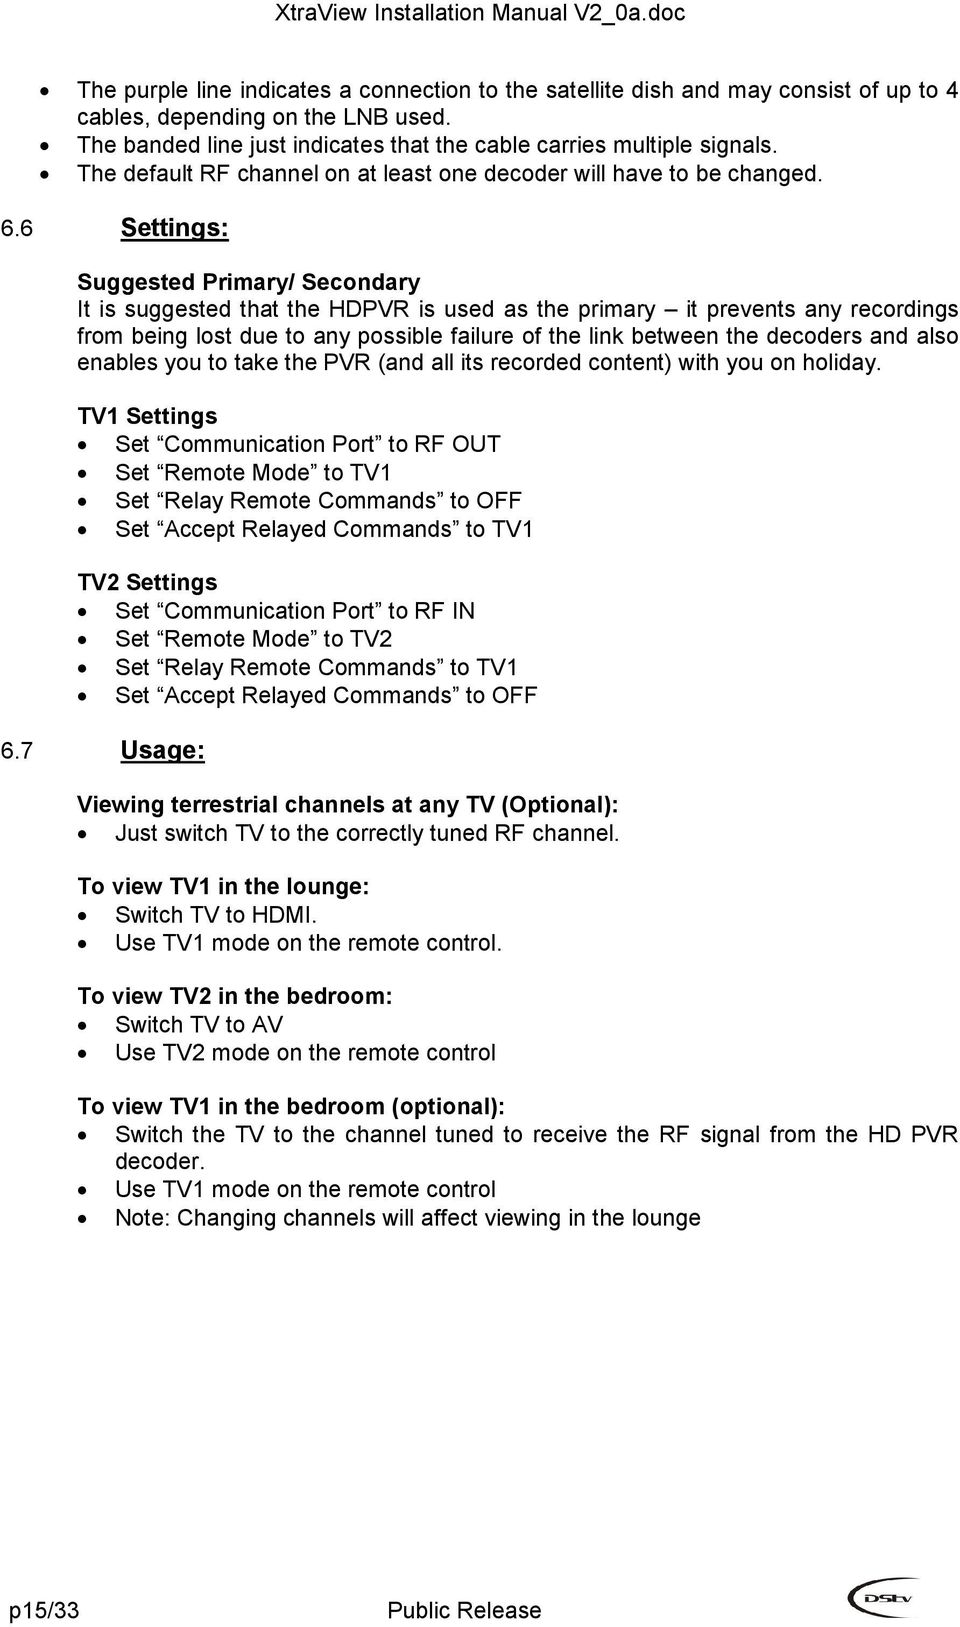 Xtraview Installation Manual Pdf What Is The Default Primary Wiring Diagram For A Cat5 Cable 6 Settings Suggested Secondary It That Hdpvr Used As